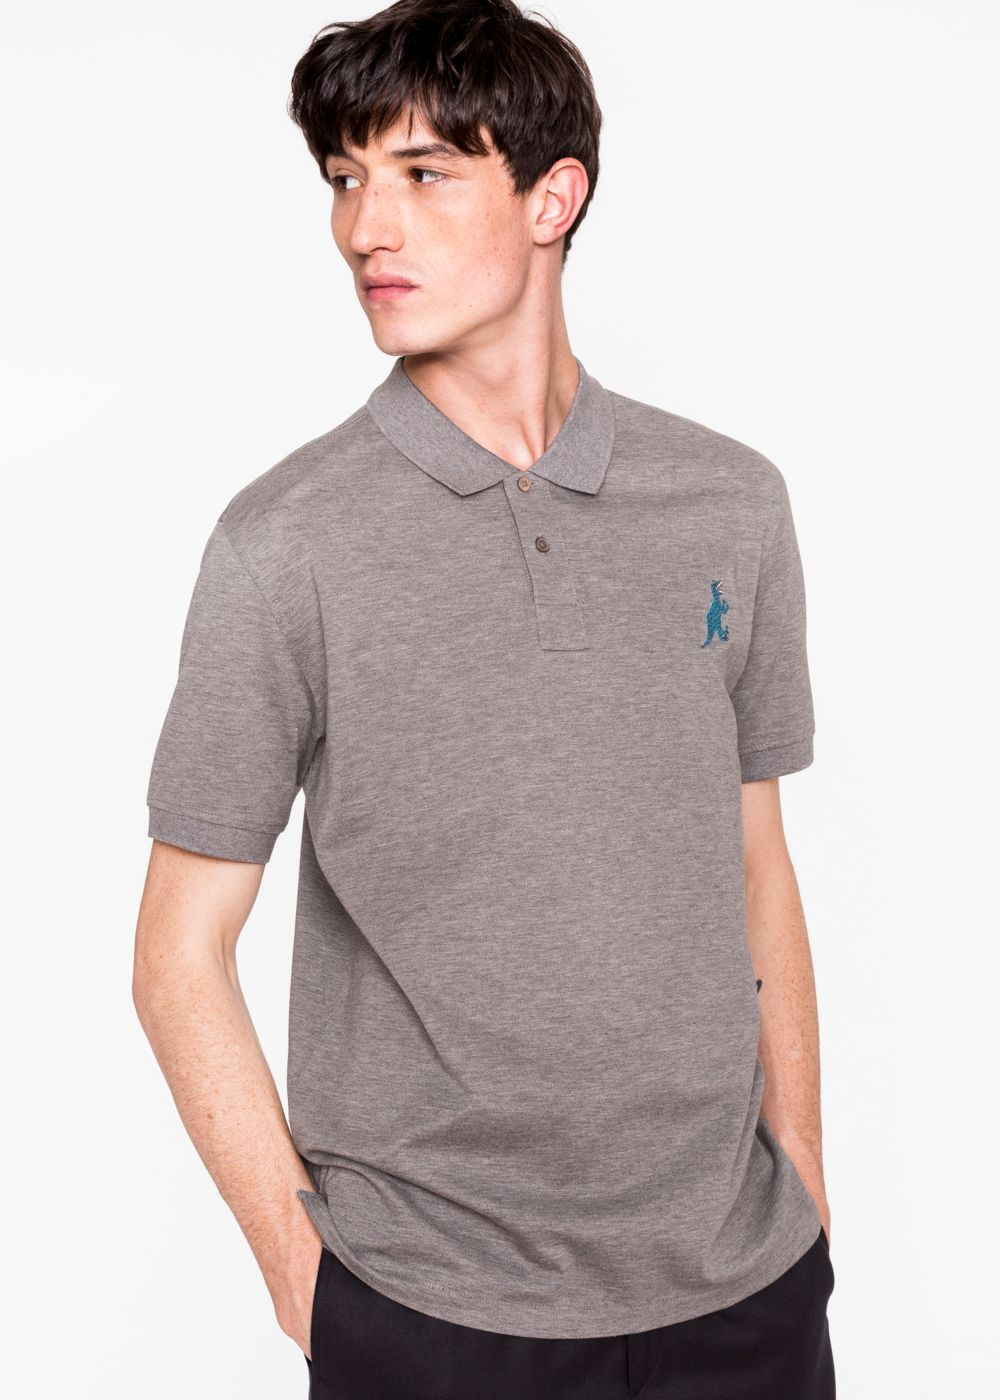 Paul Smith Men's Grey Marl Cotton-Piqu Embroidered 'Dino' Polo Shirt